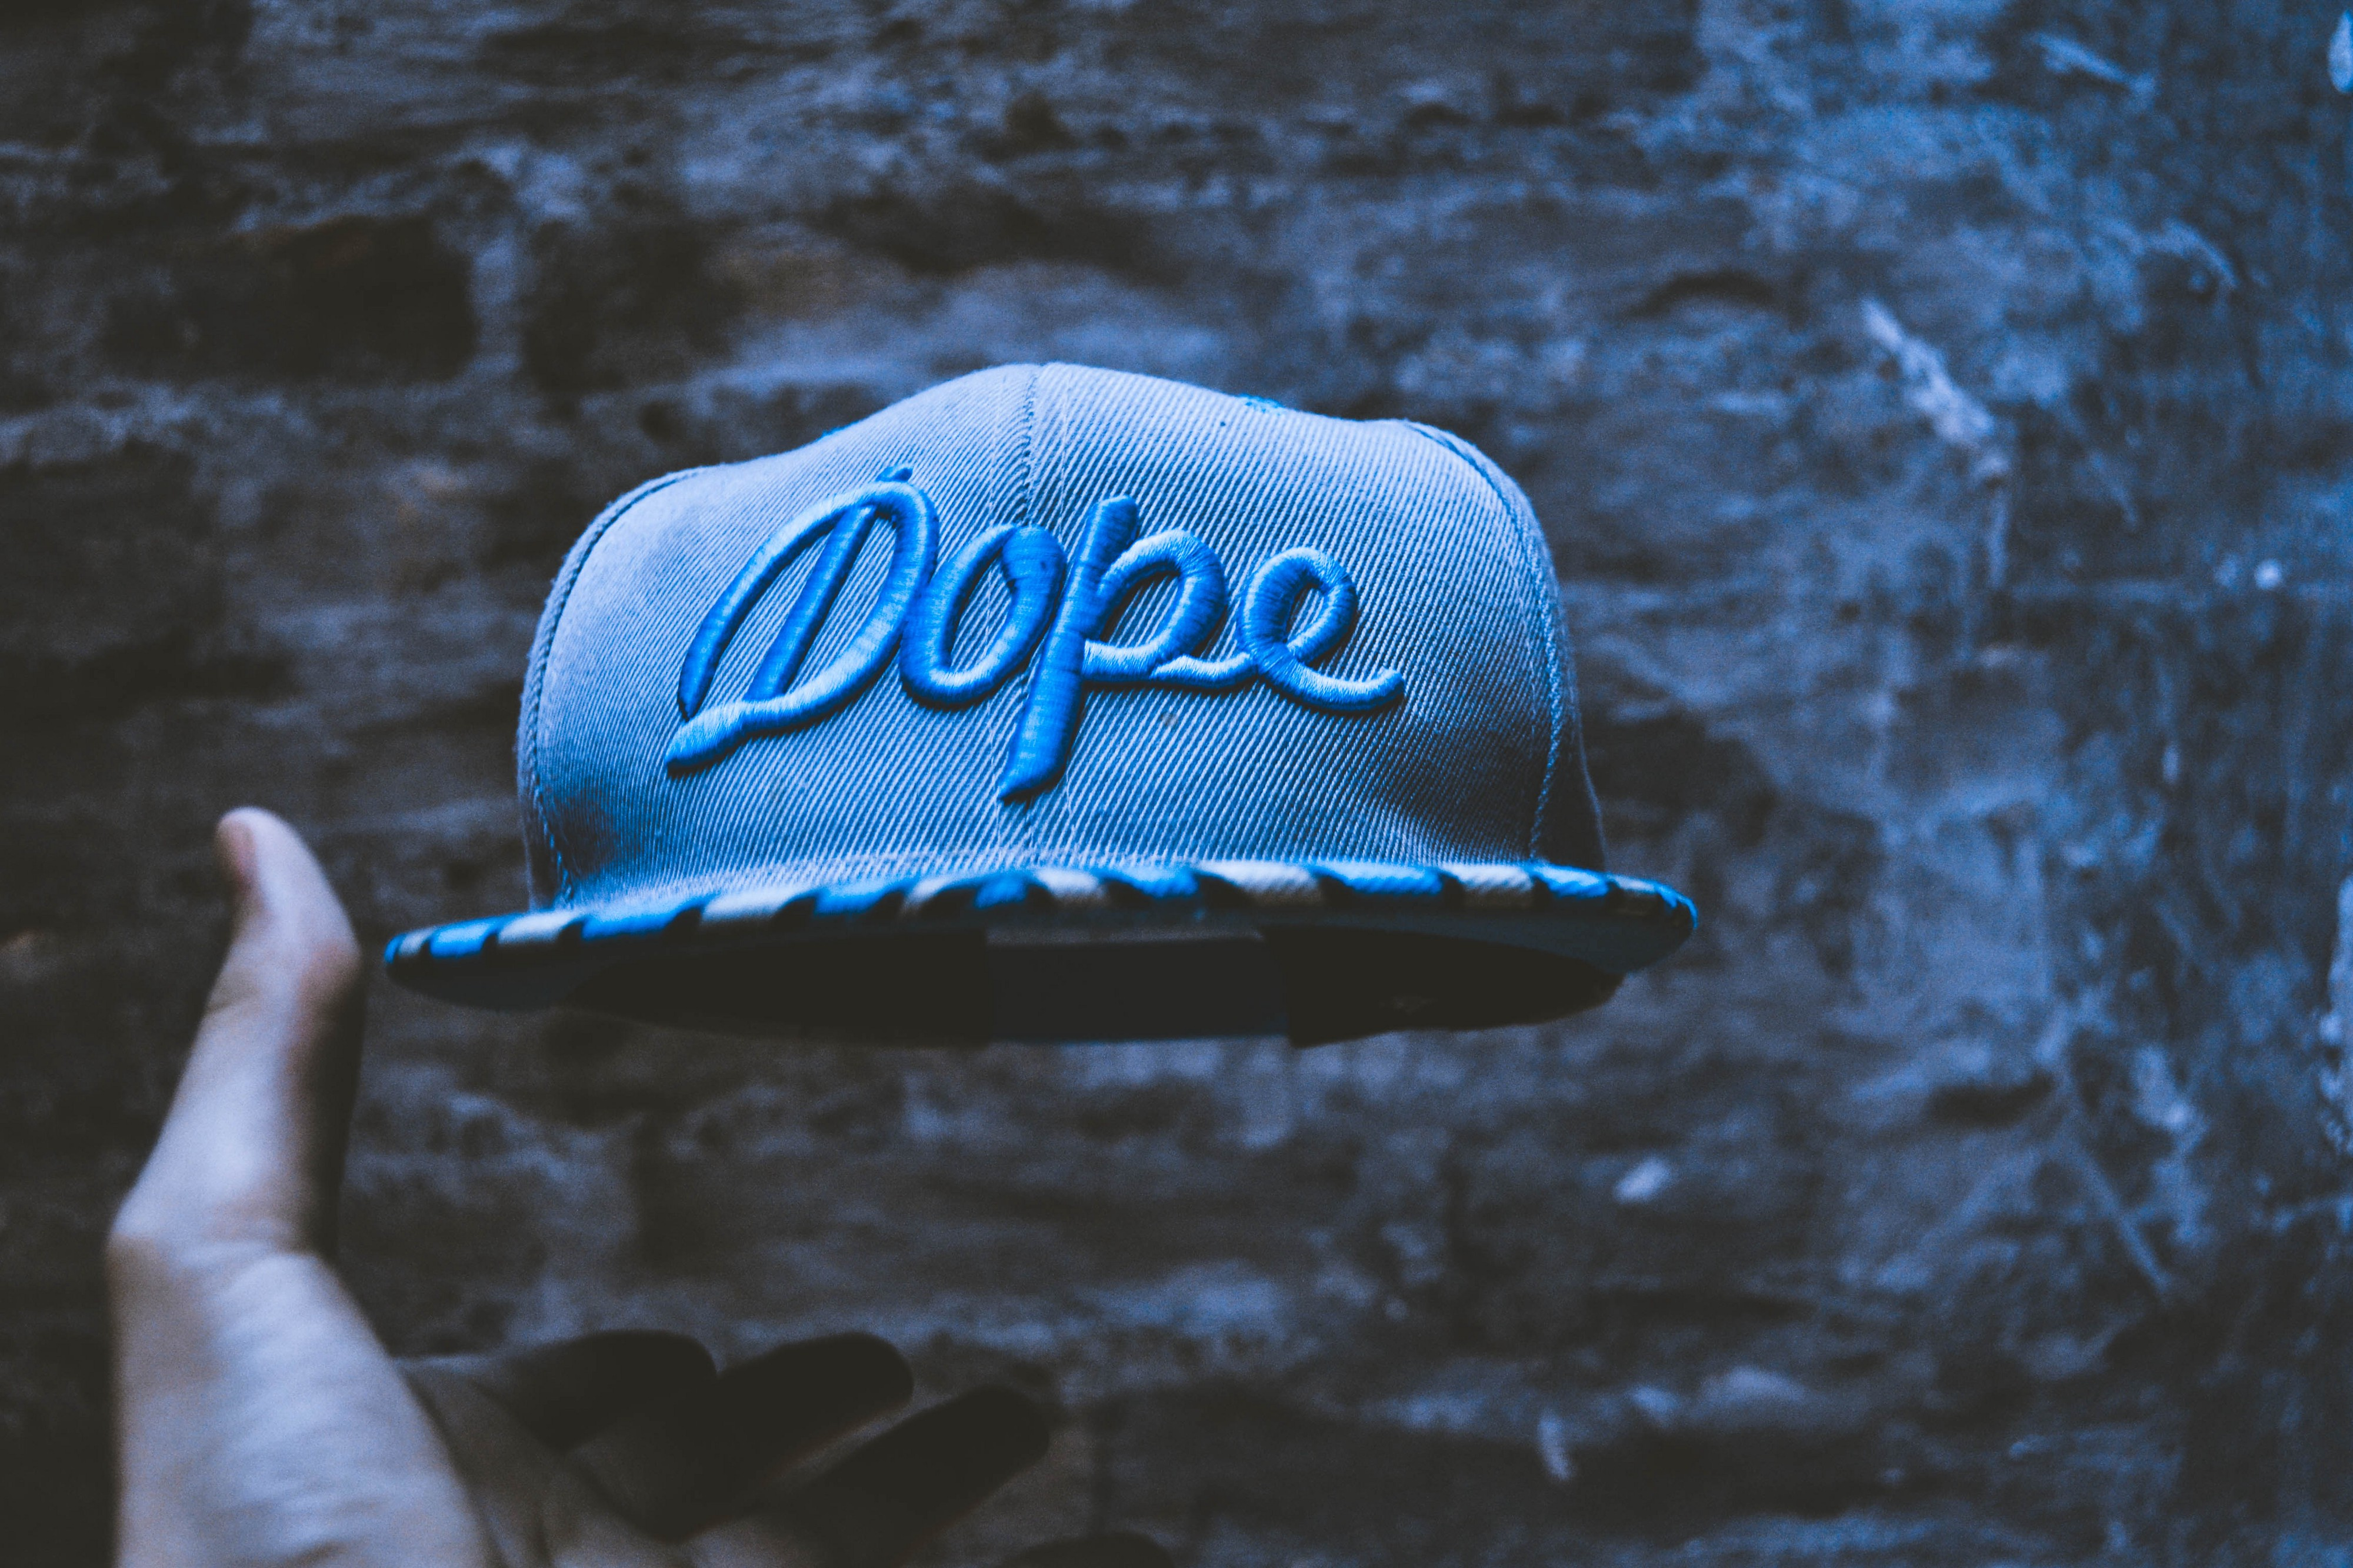 Cap with 'dope' emblem. From regular dope to no dopmaine—why are people dopmaine fasting?